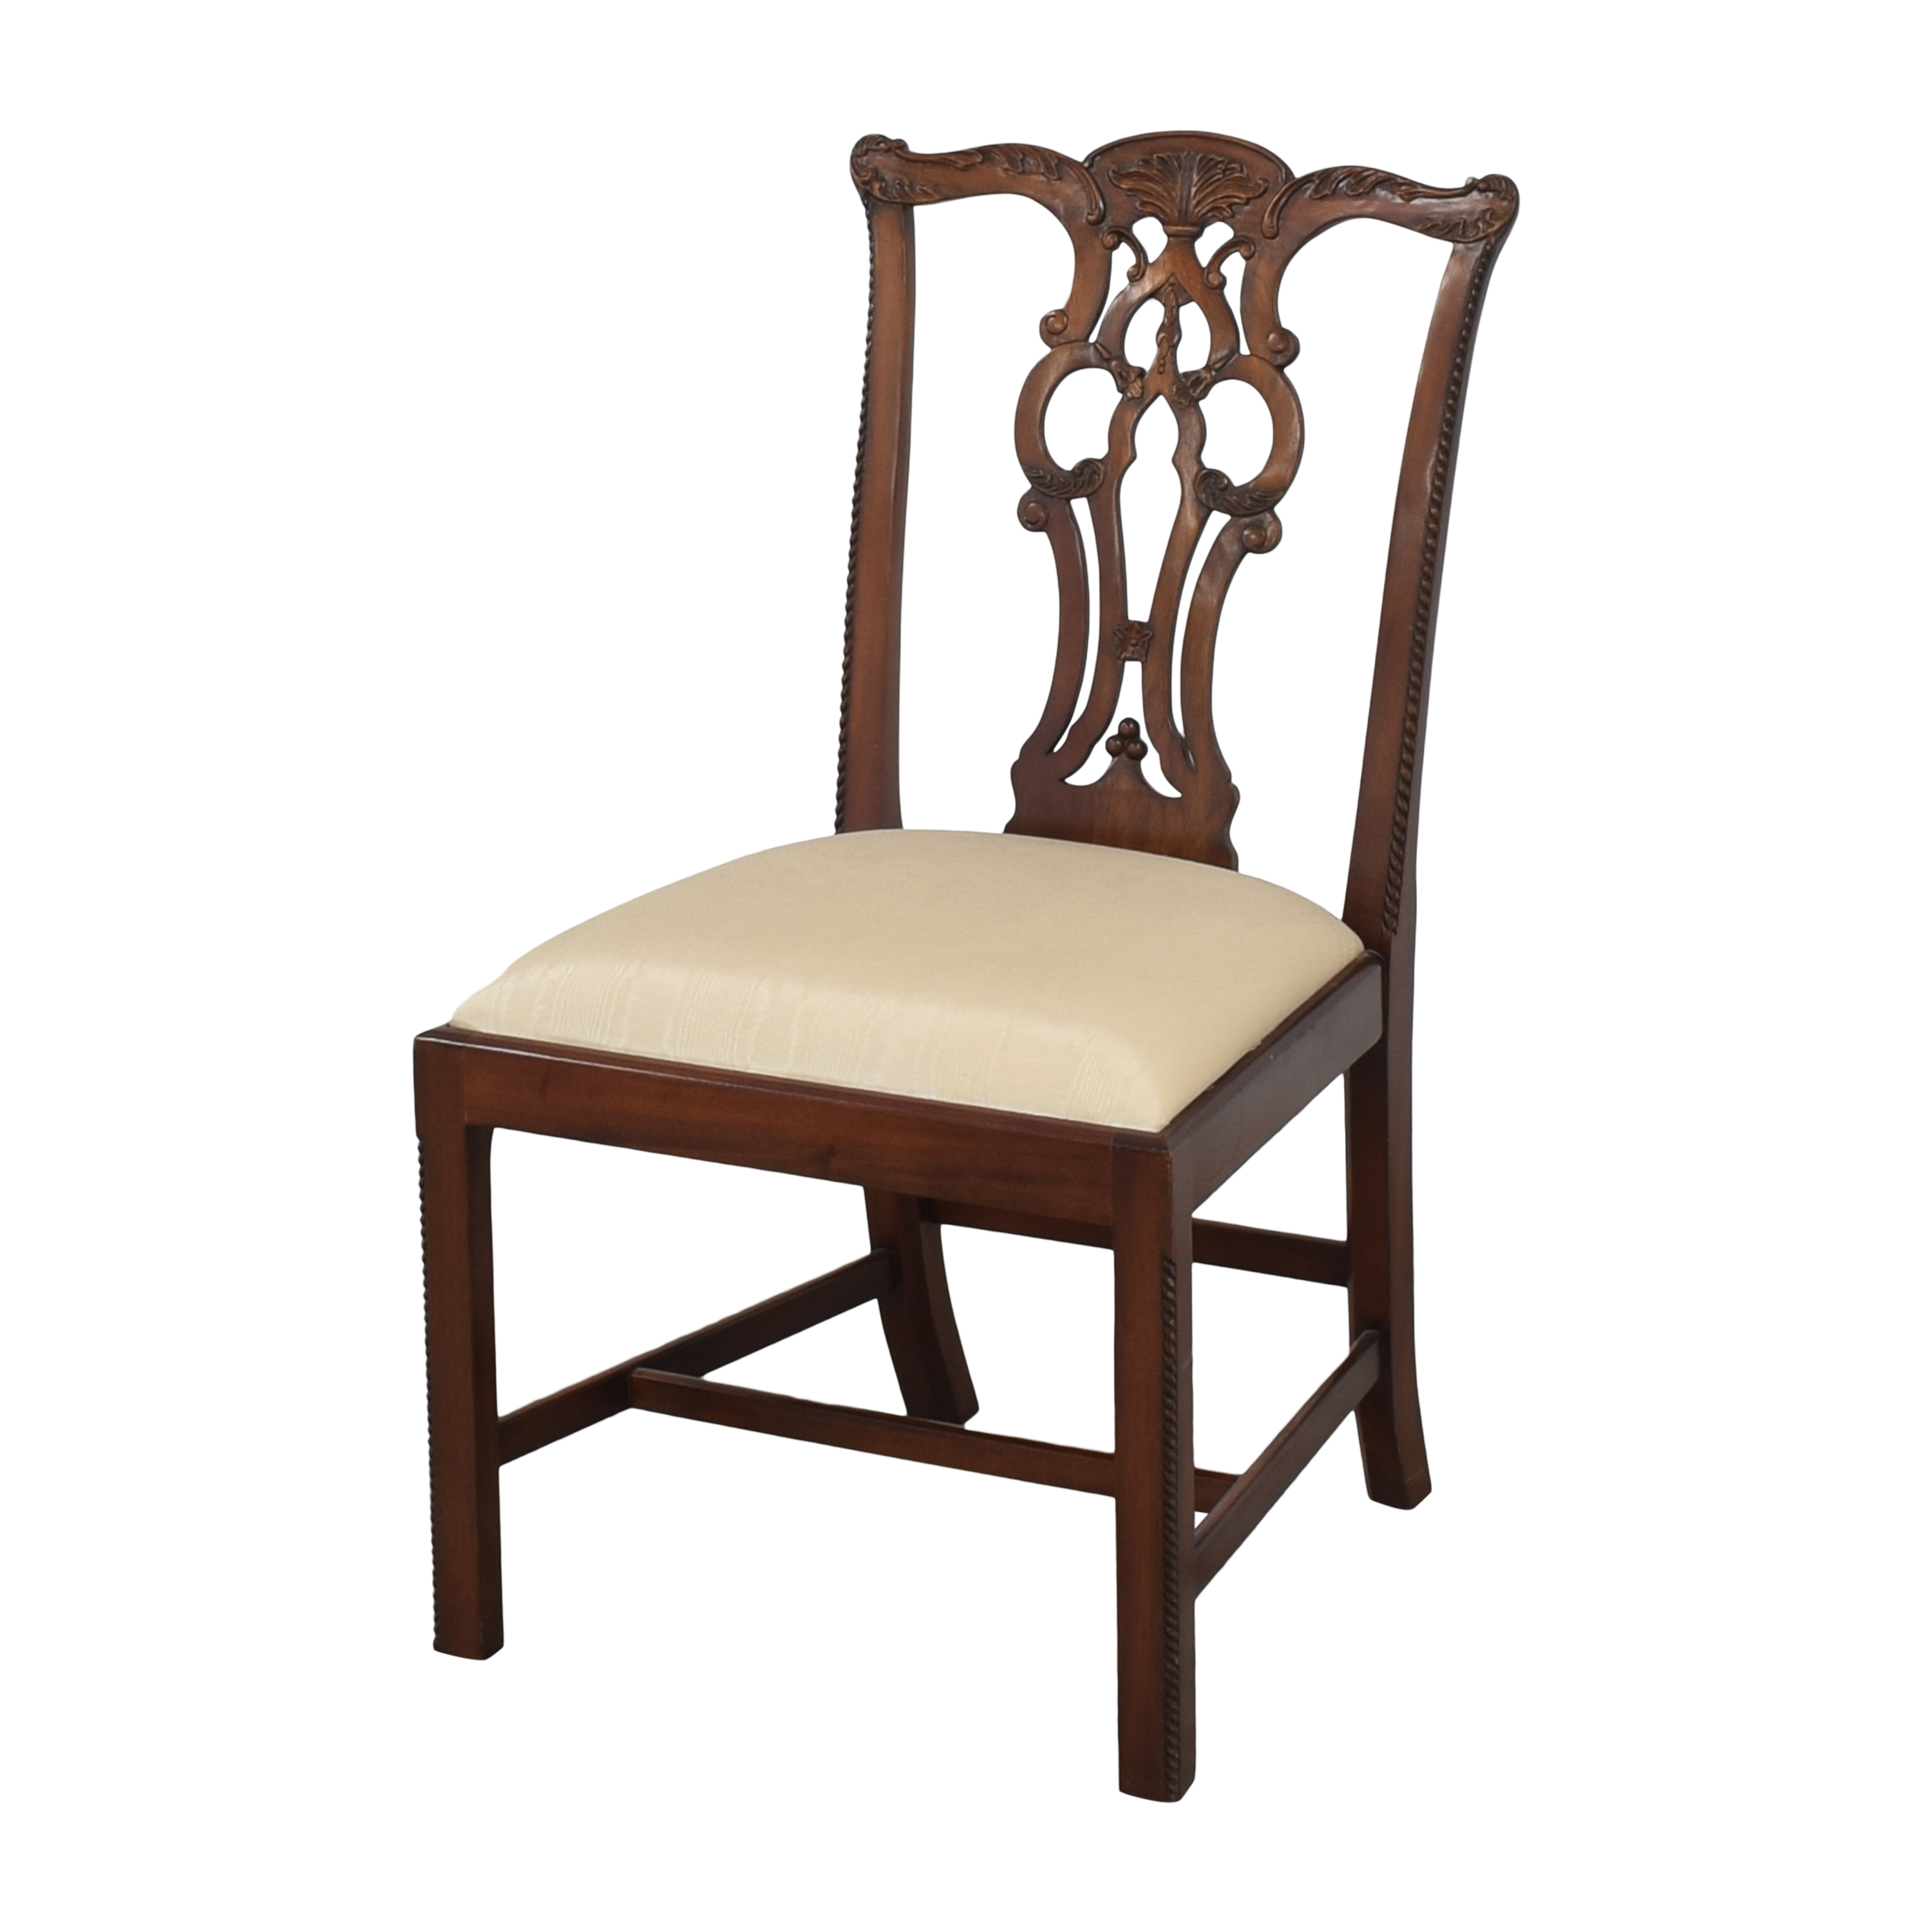 Maitland-Smith Chippendale Dining Side Chair / Dining Chairs